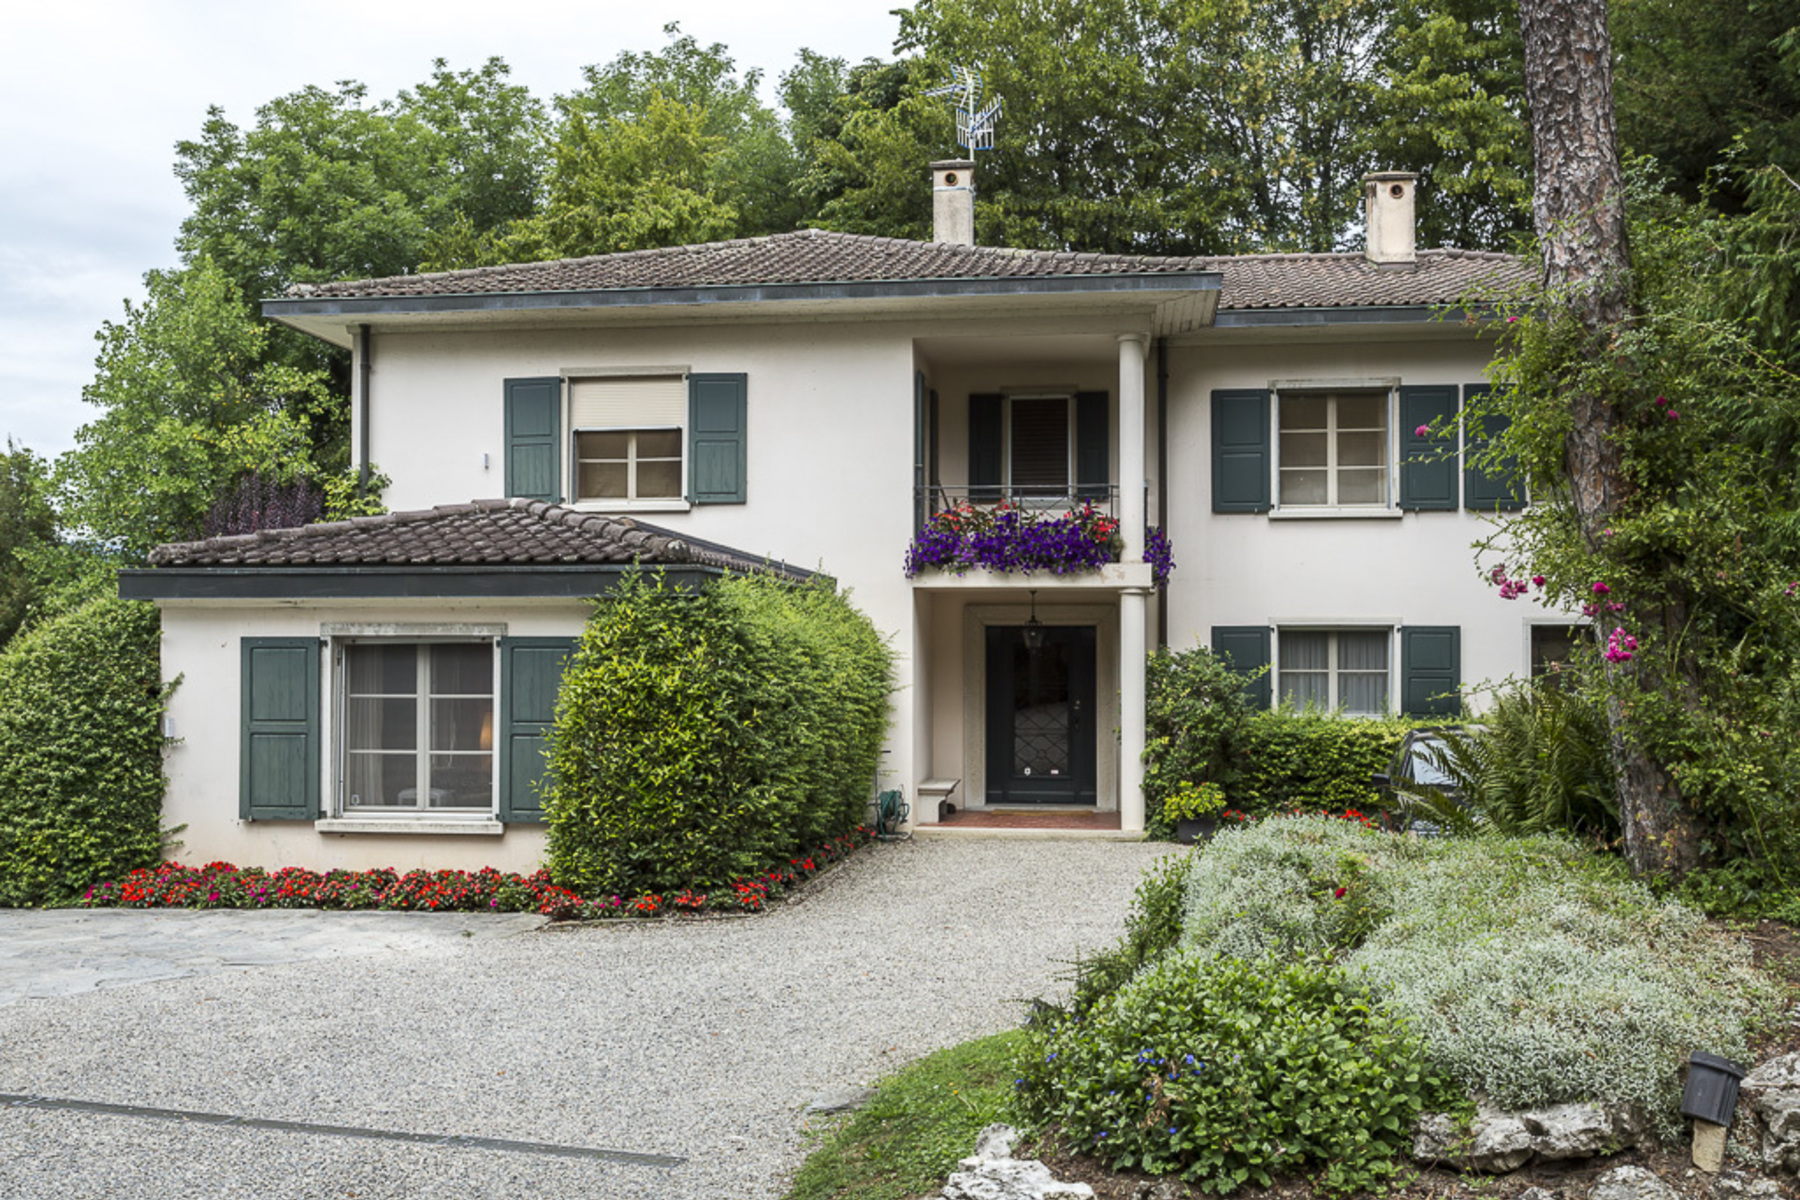 Single Family Home for Sale at Exclusive location with private access to the lake! Vésenaz Other Switzerland, Other Areas In Switzerland, 1222 Switzerland